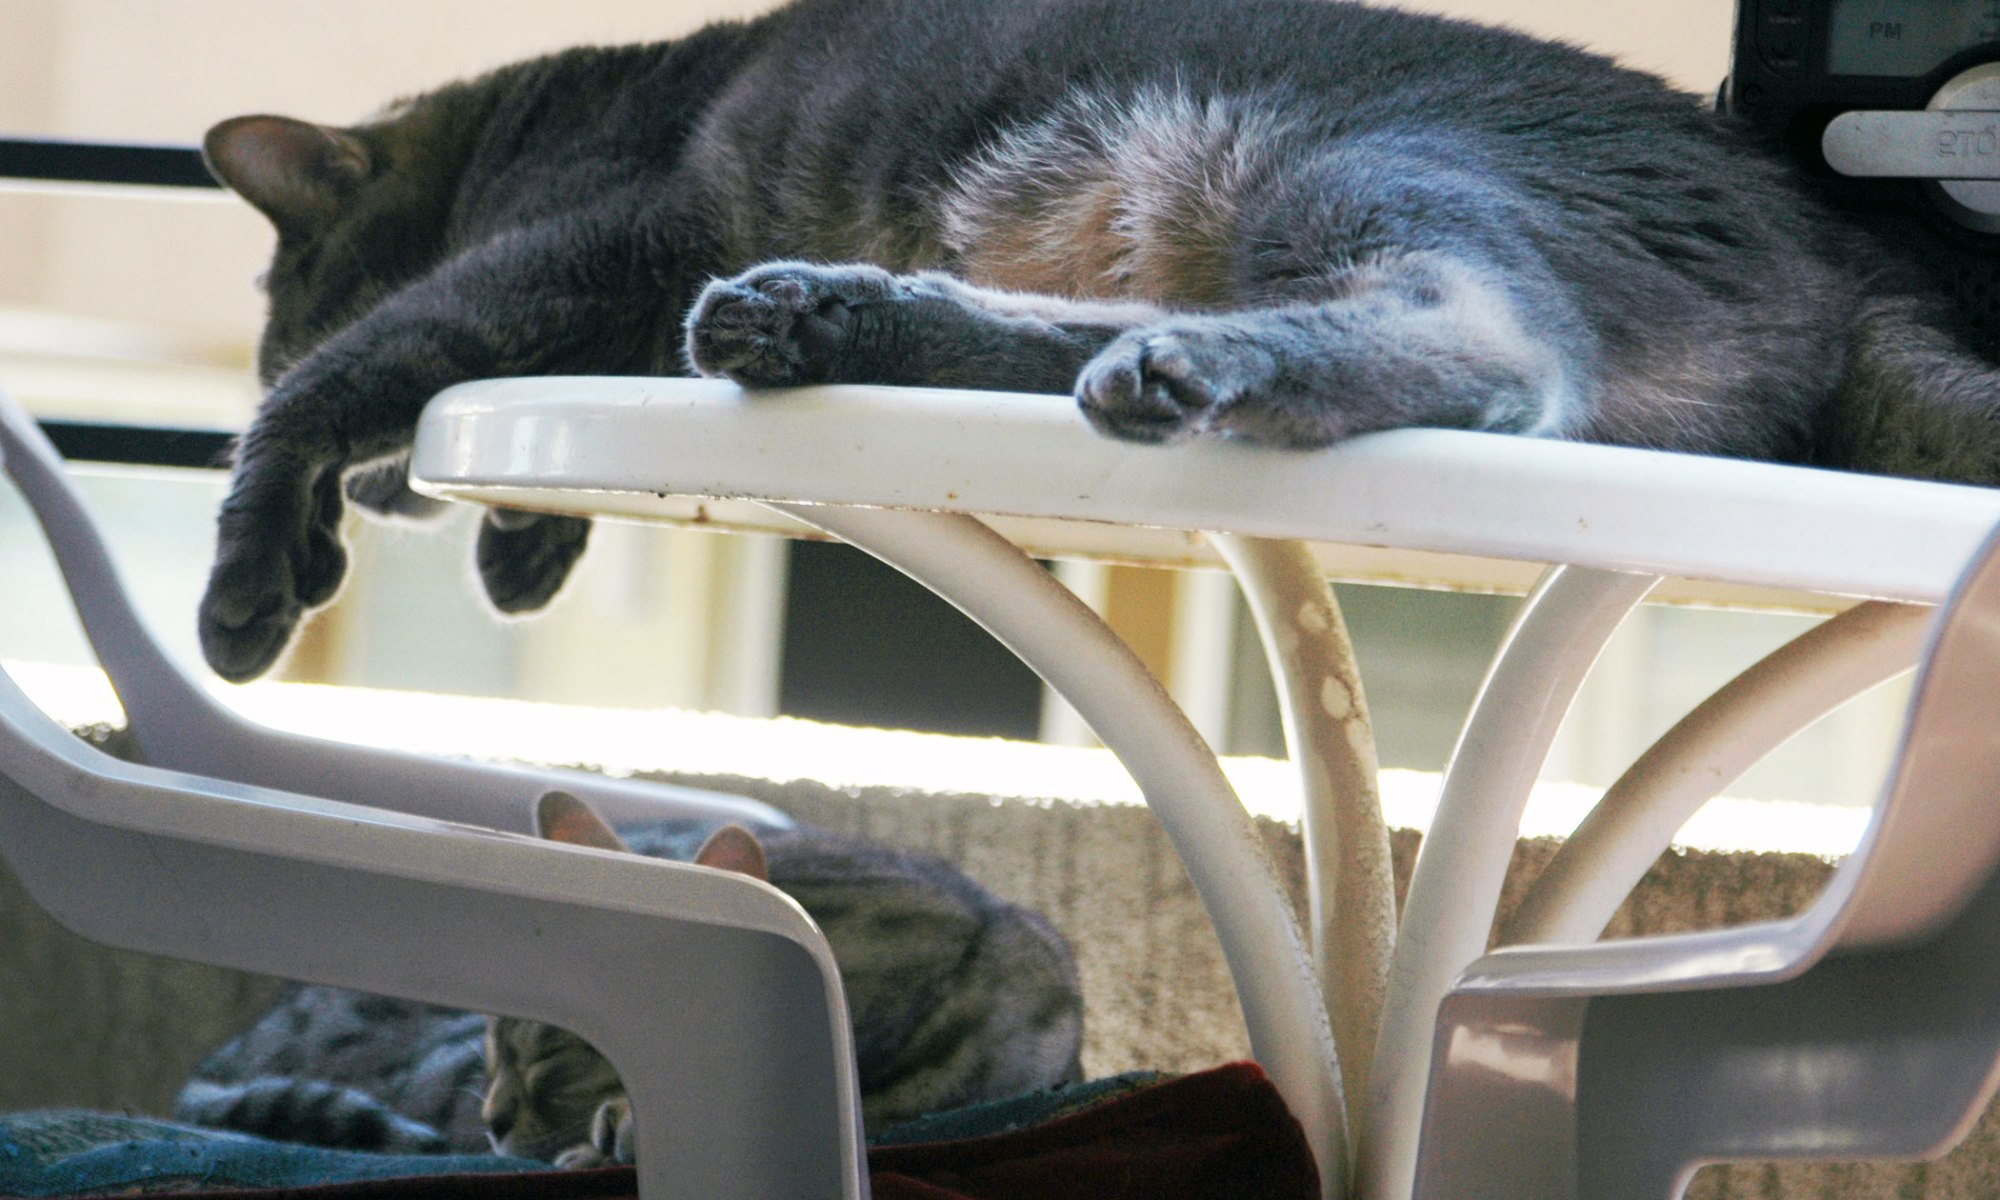 Bagheera the Diabetic Cat and Jacey Relax on the Balcony